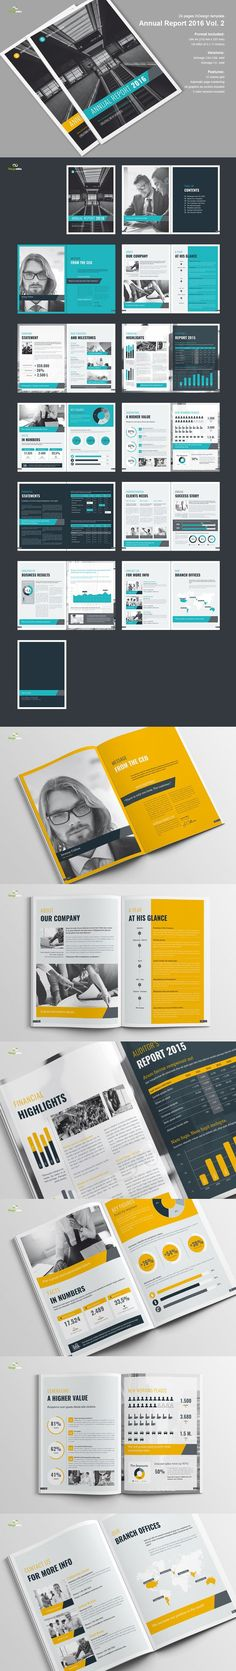 Minimal And Professional Annual Report Design Template InDesign INDD - Annual report design templates 2016